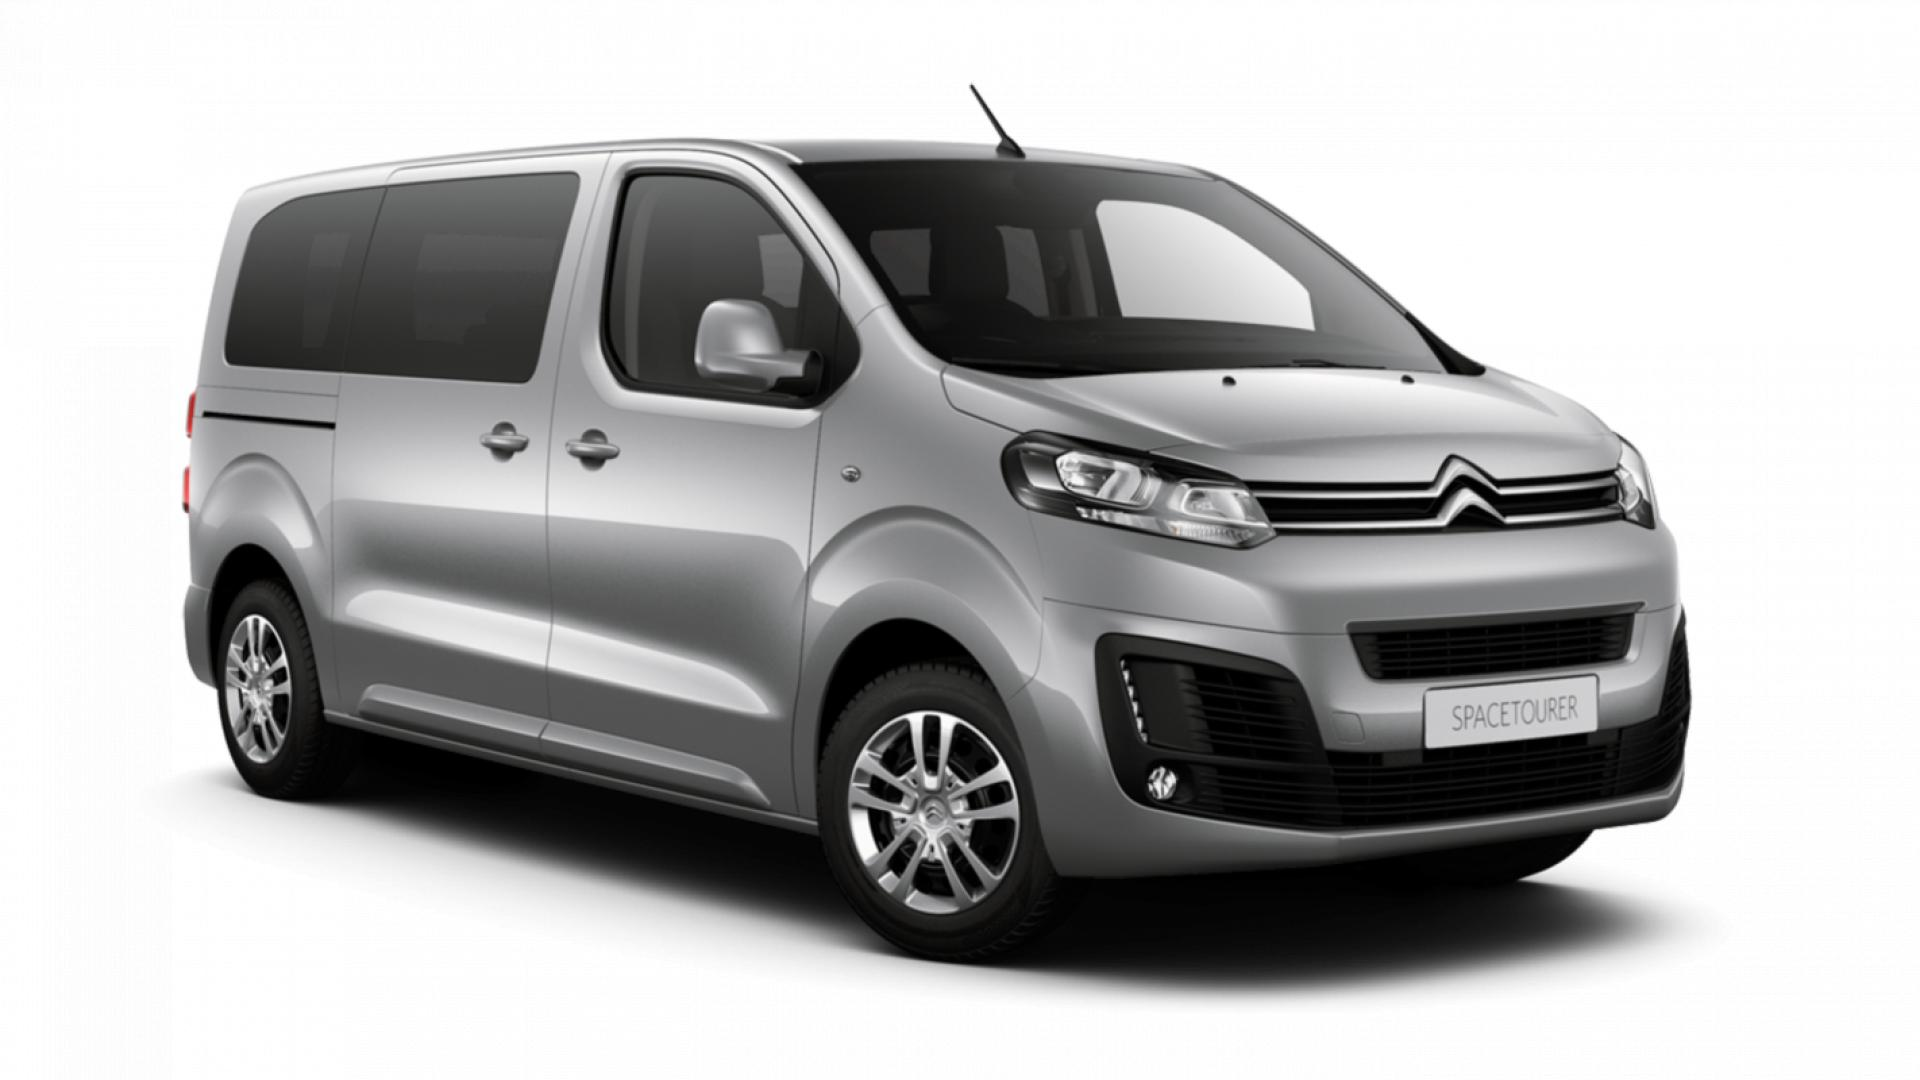 new citroen space tourer estate 1 6 bluehdi 115 business xs 5dr robins and day. Black Bedroom Furniture Sets. Home Design Ideas